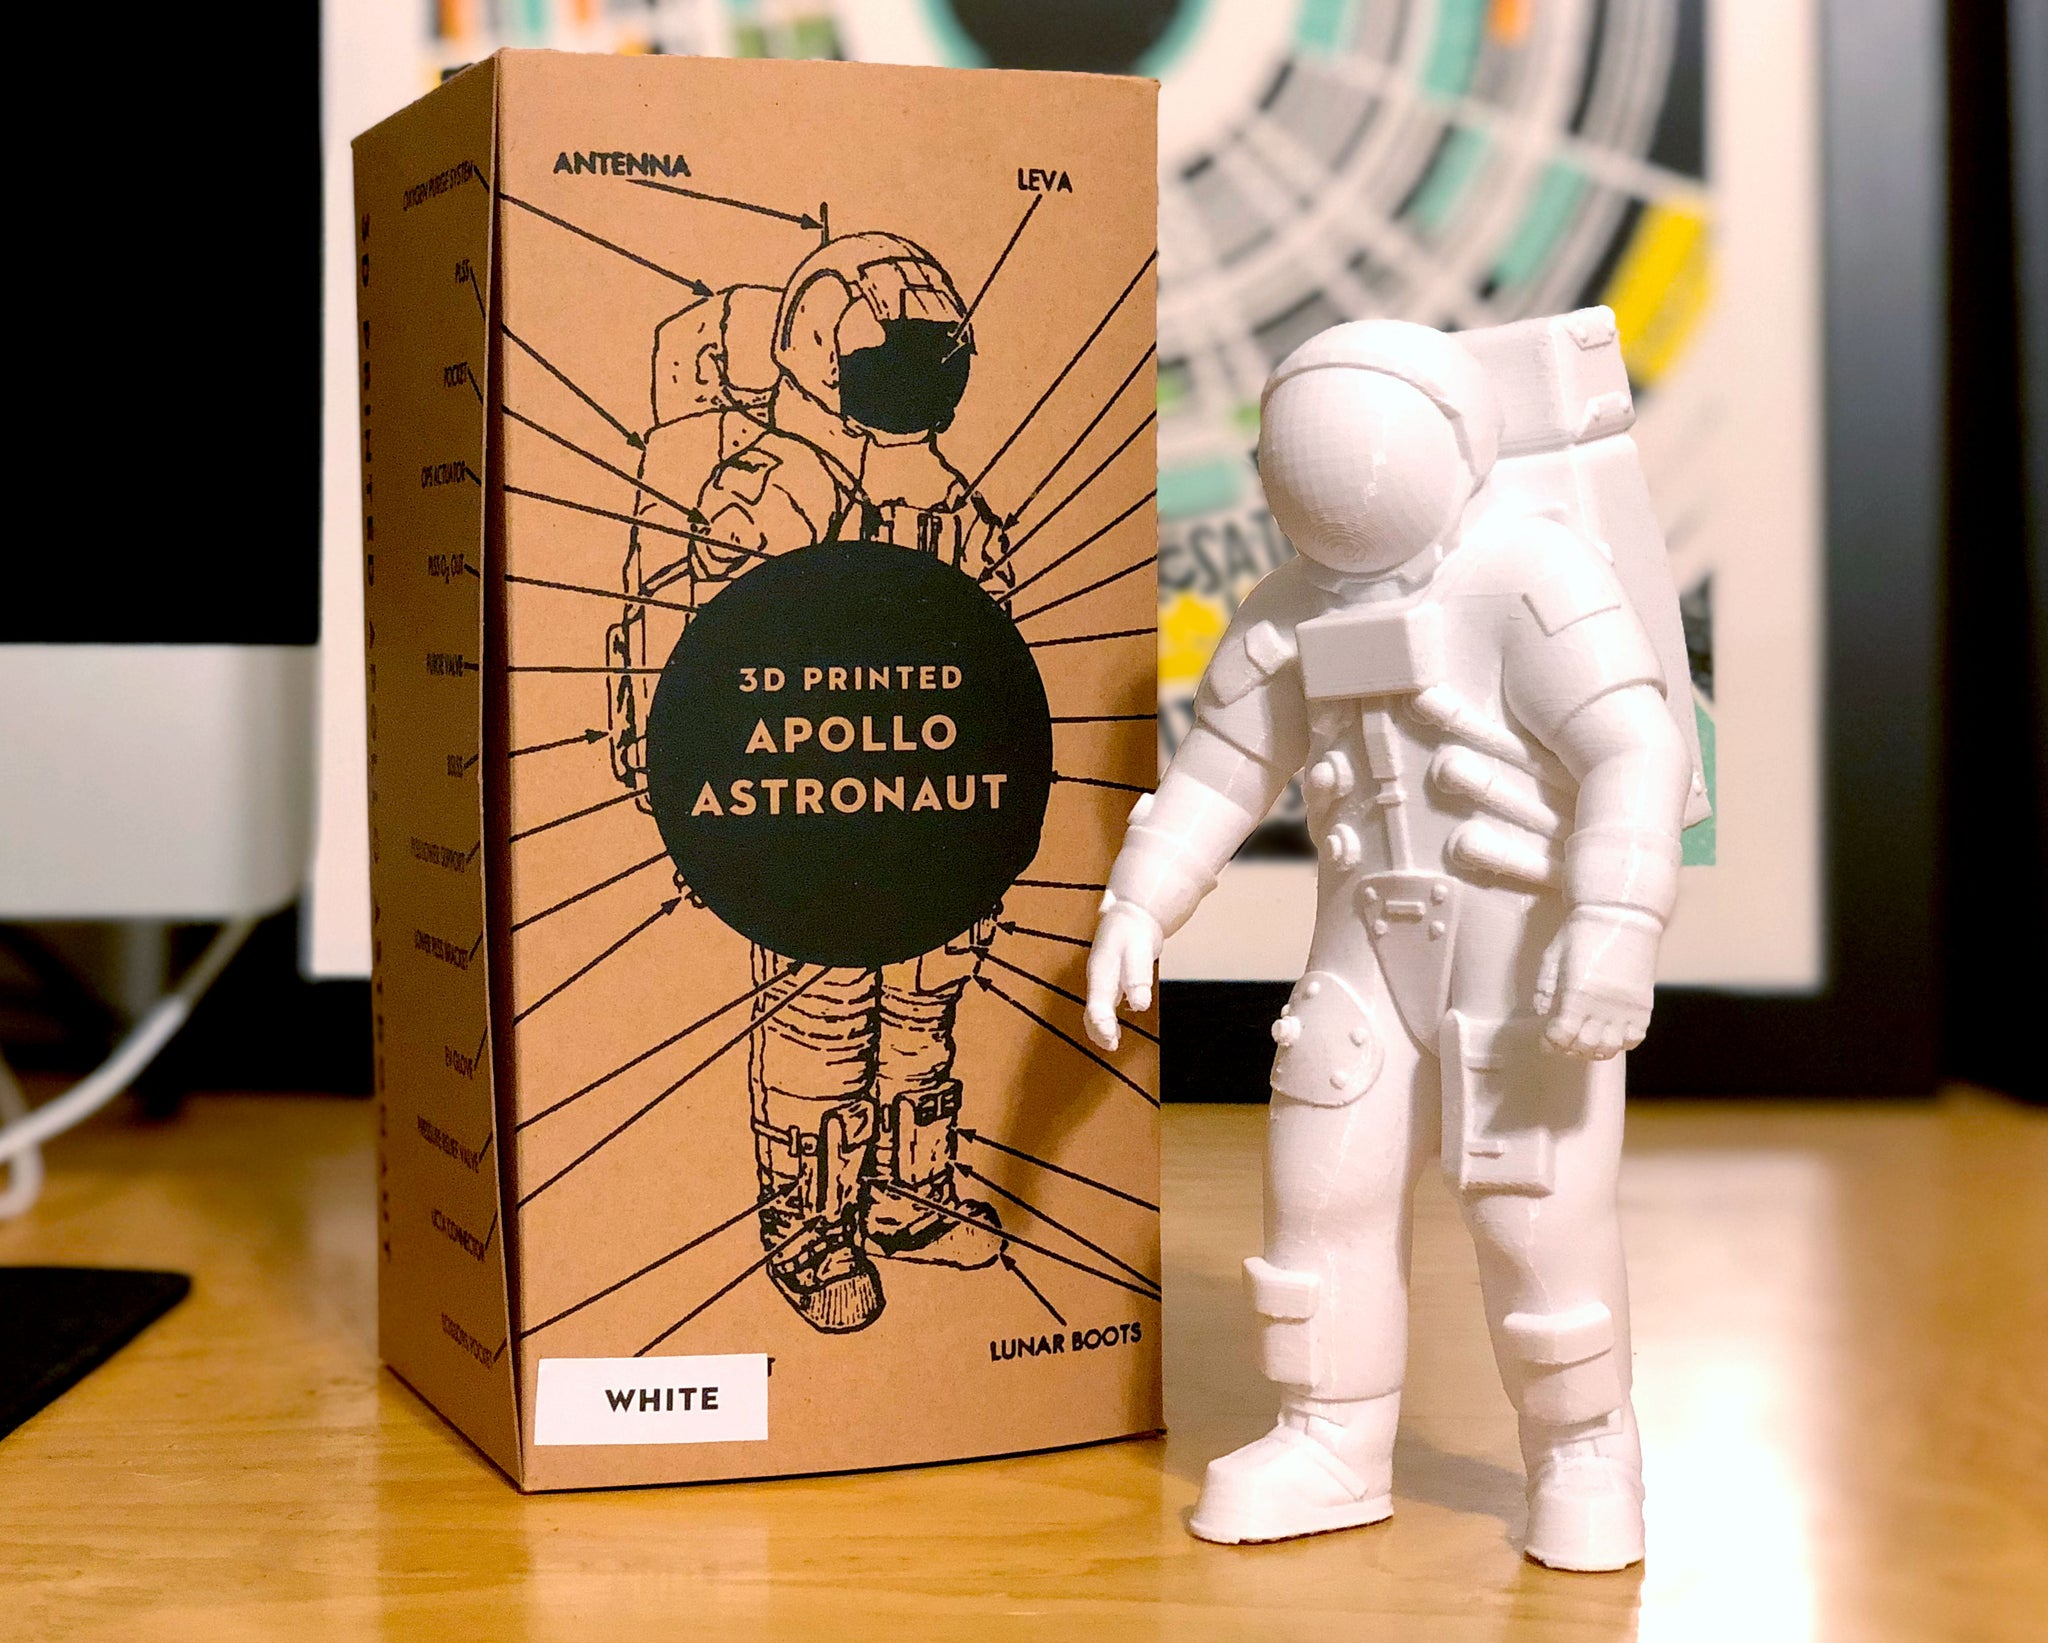 3D Printed Apollo Astronaut